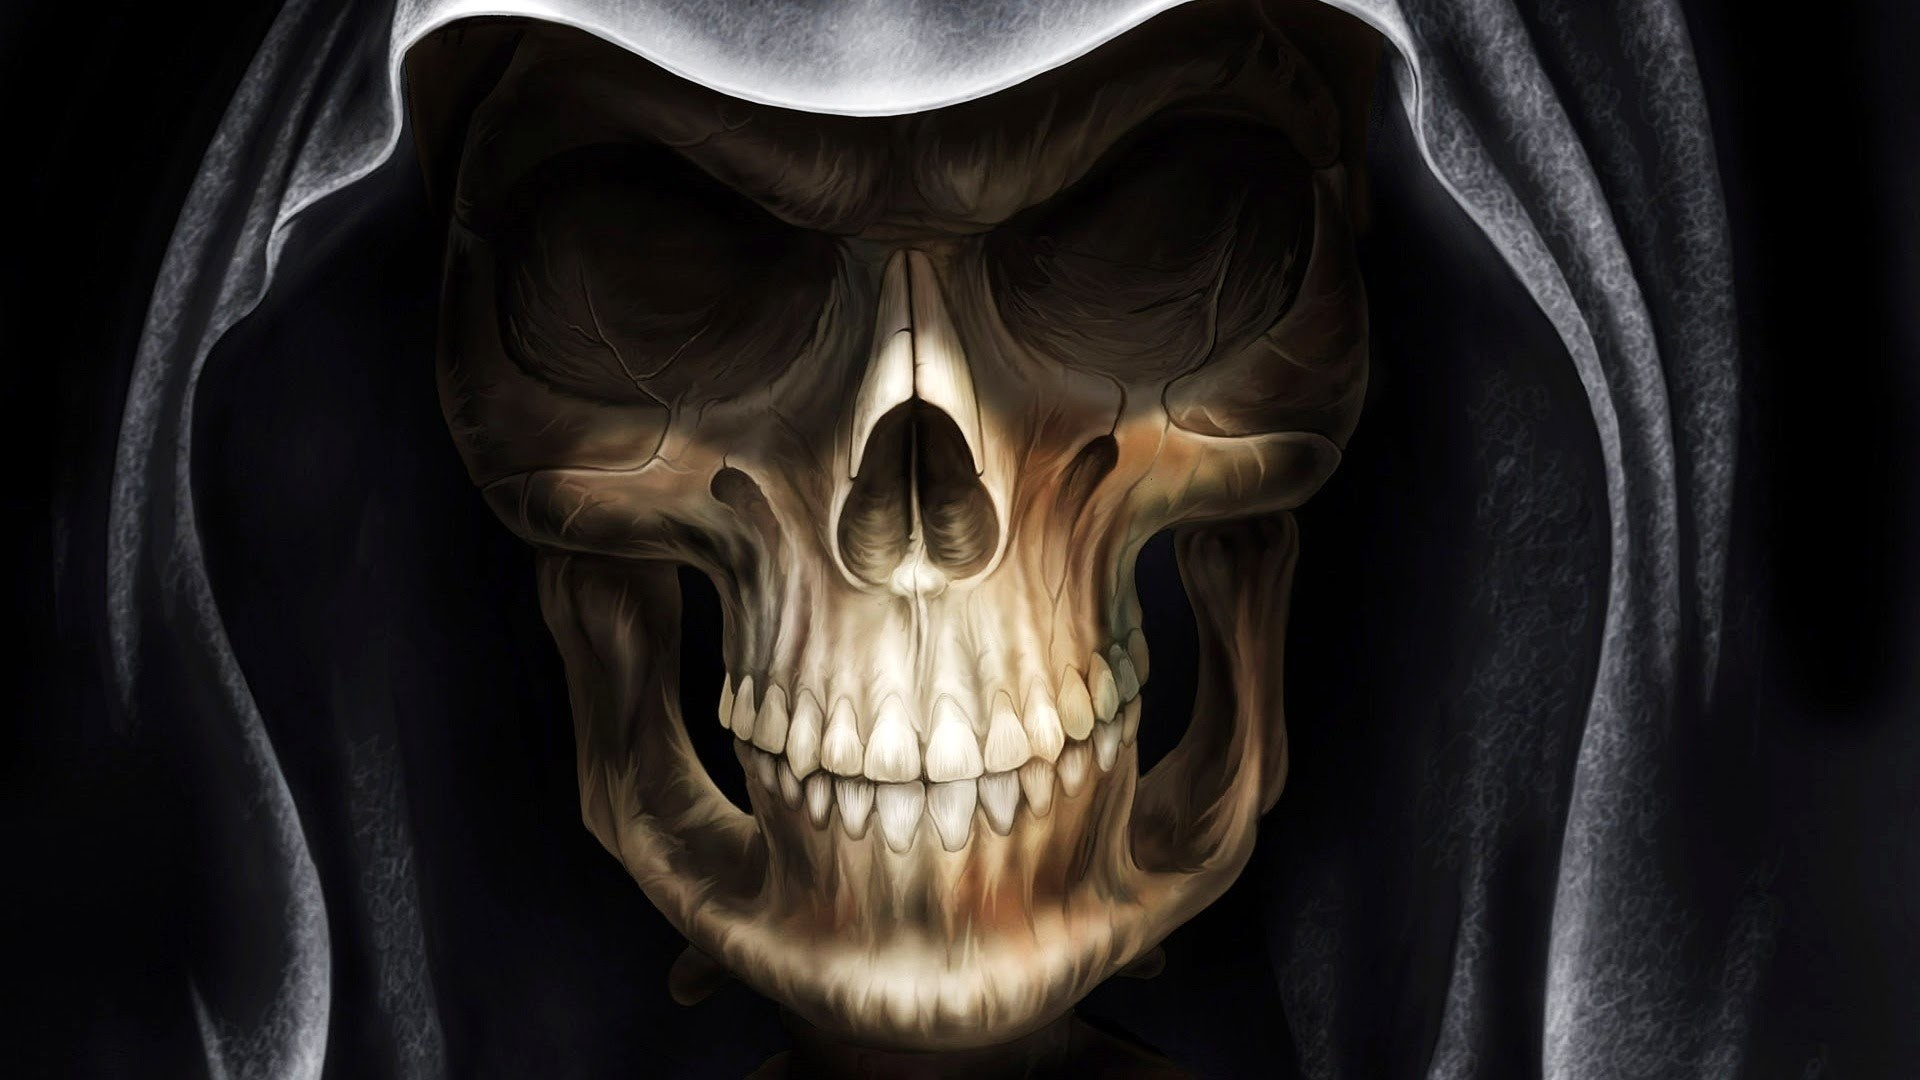 Halloween Skeleton Wallpaper (65+ images)